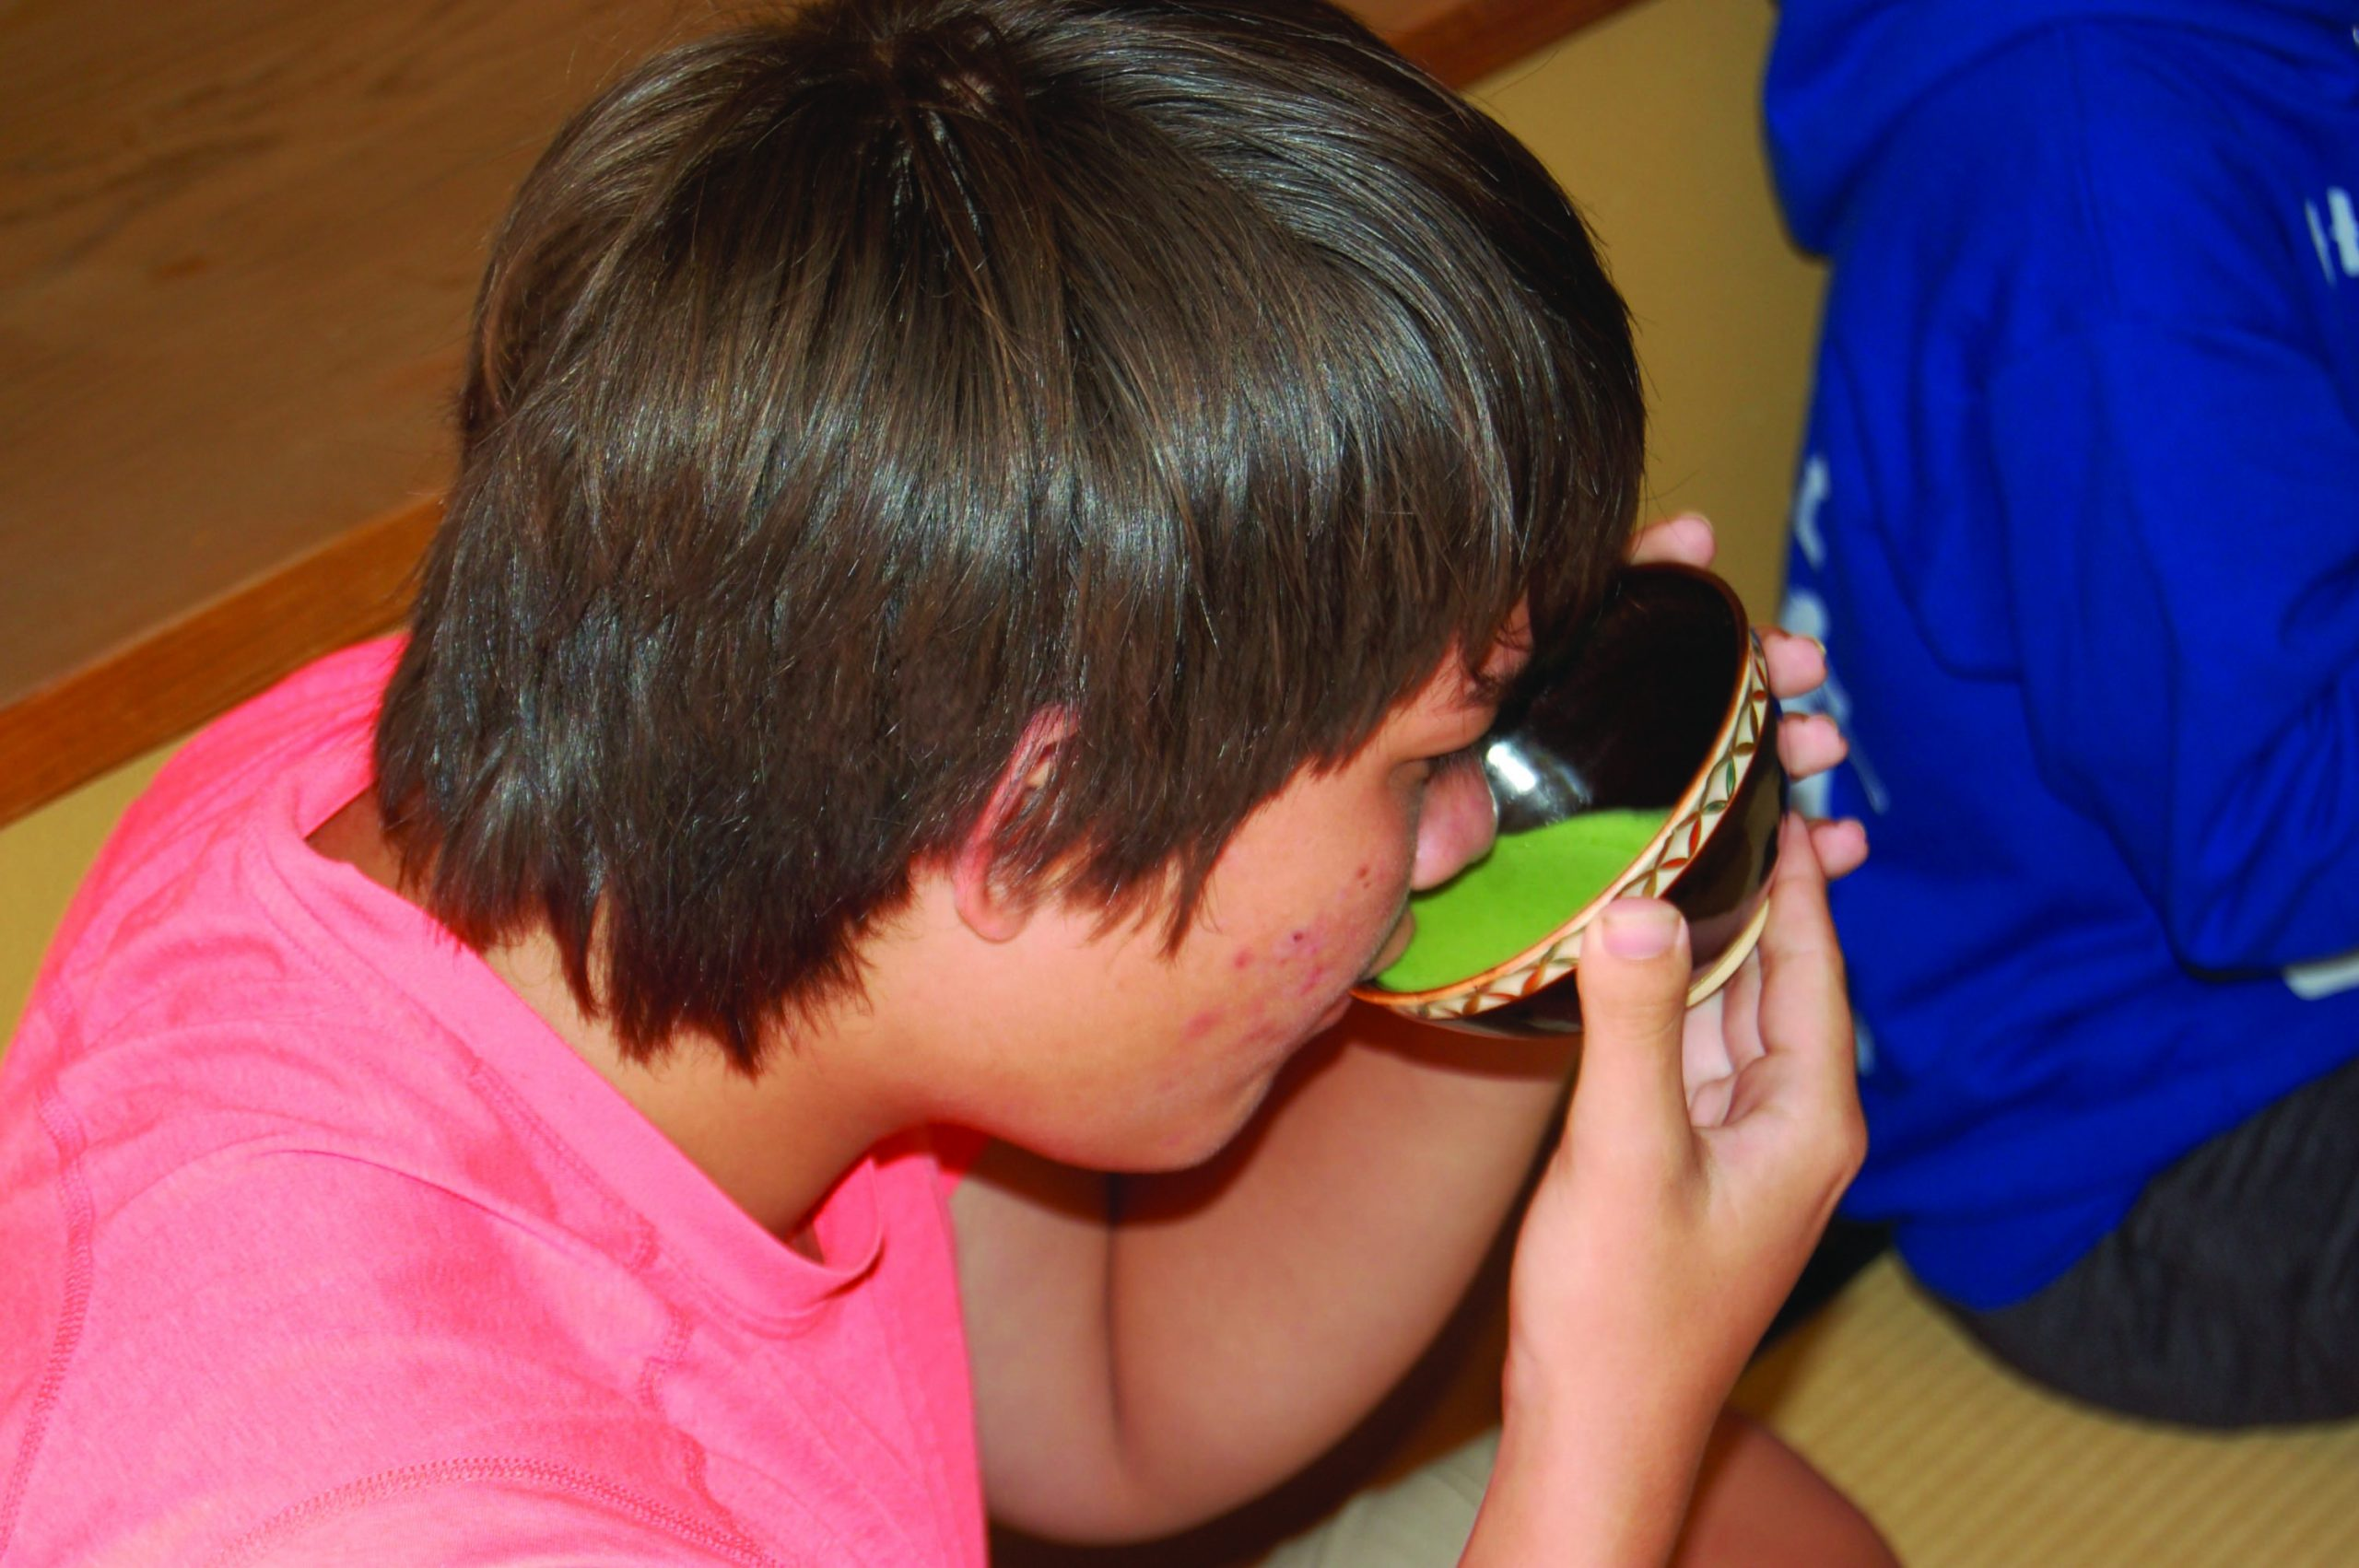 The Urasenke Foundation Hawaii introduced the students to the tradition and etiquette of tea ceremony. Jacob Jerome of Maui Preparatory Academy learned how to properly hold a teacup and sip green tea.